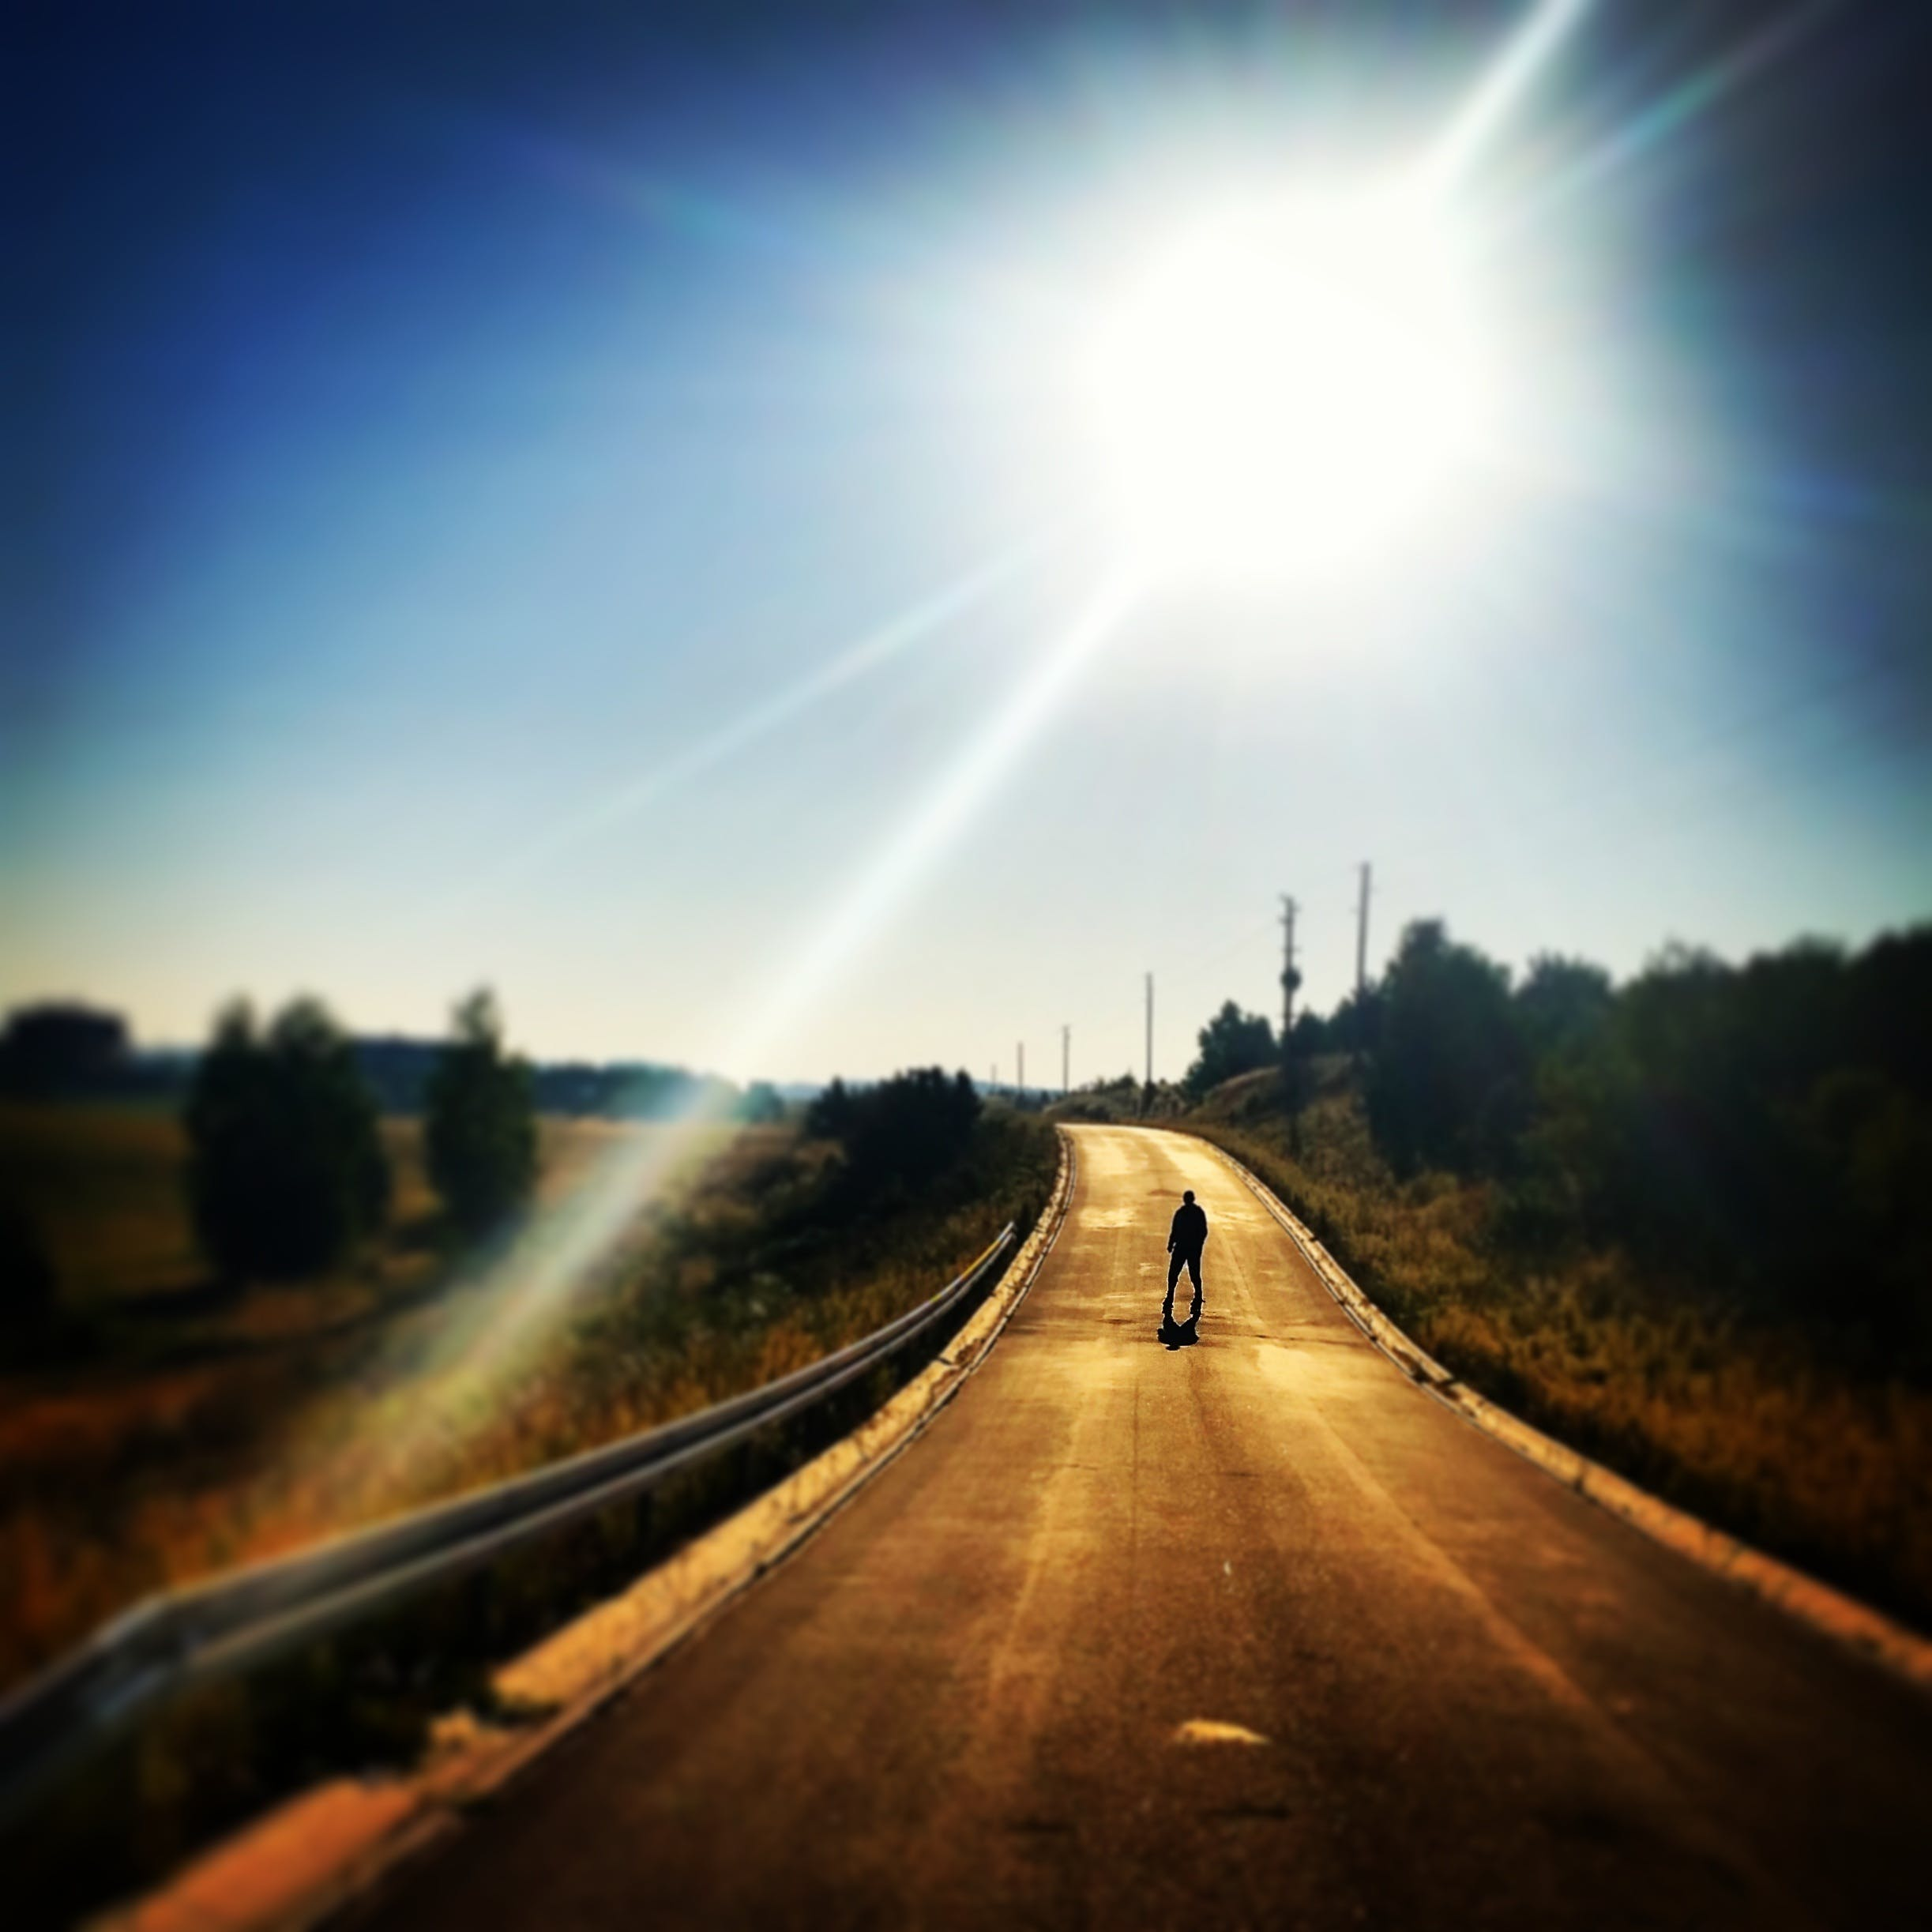 Person Standing on Blacktop Road Under Blue Sky During Daytime